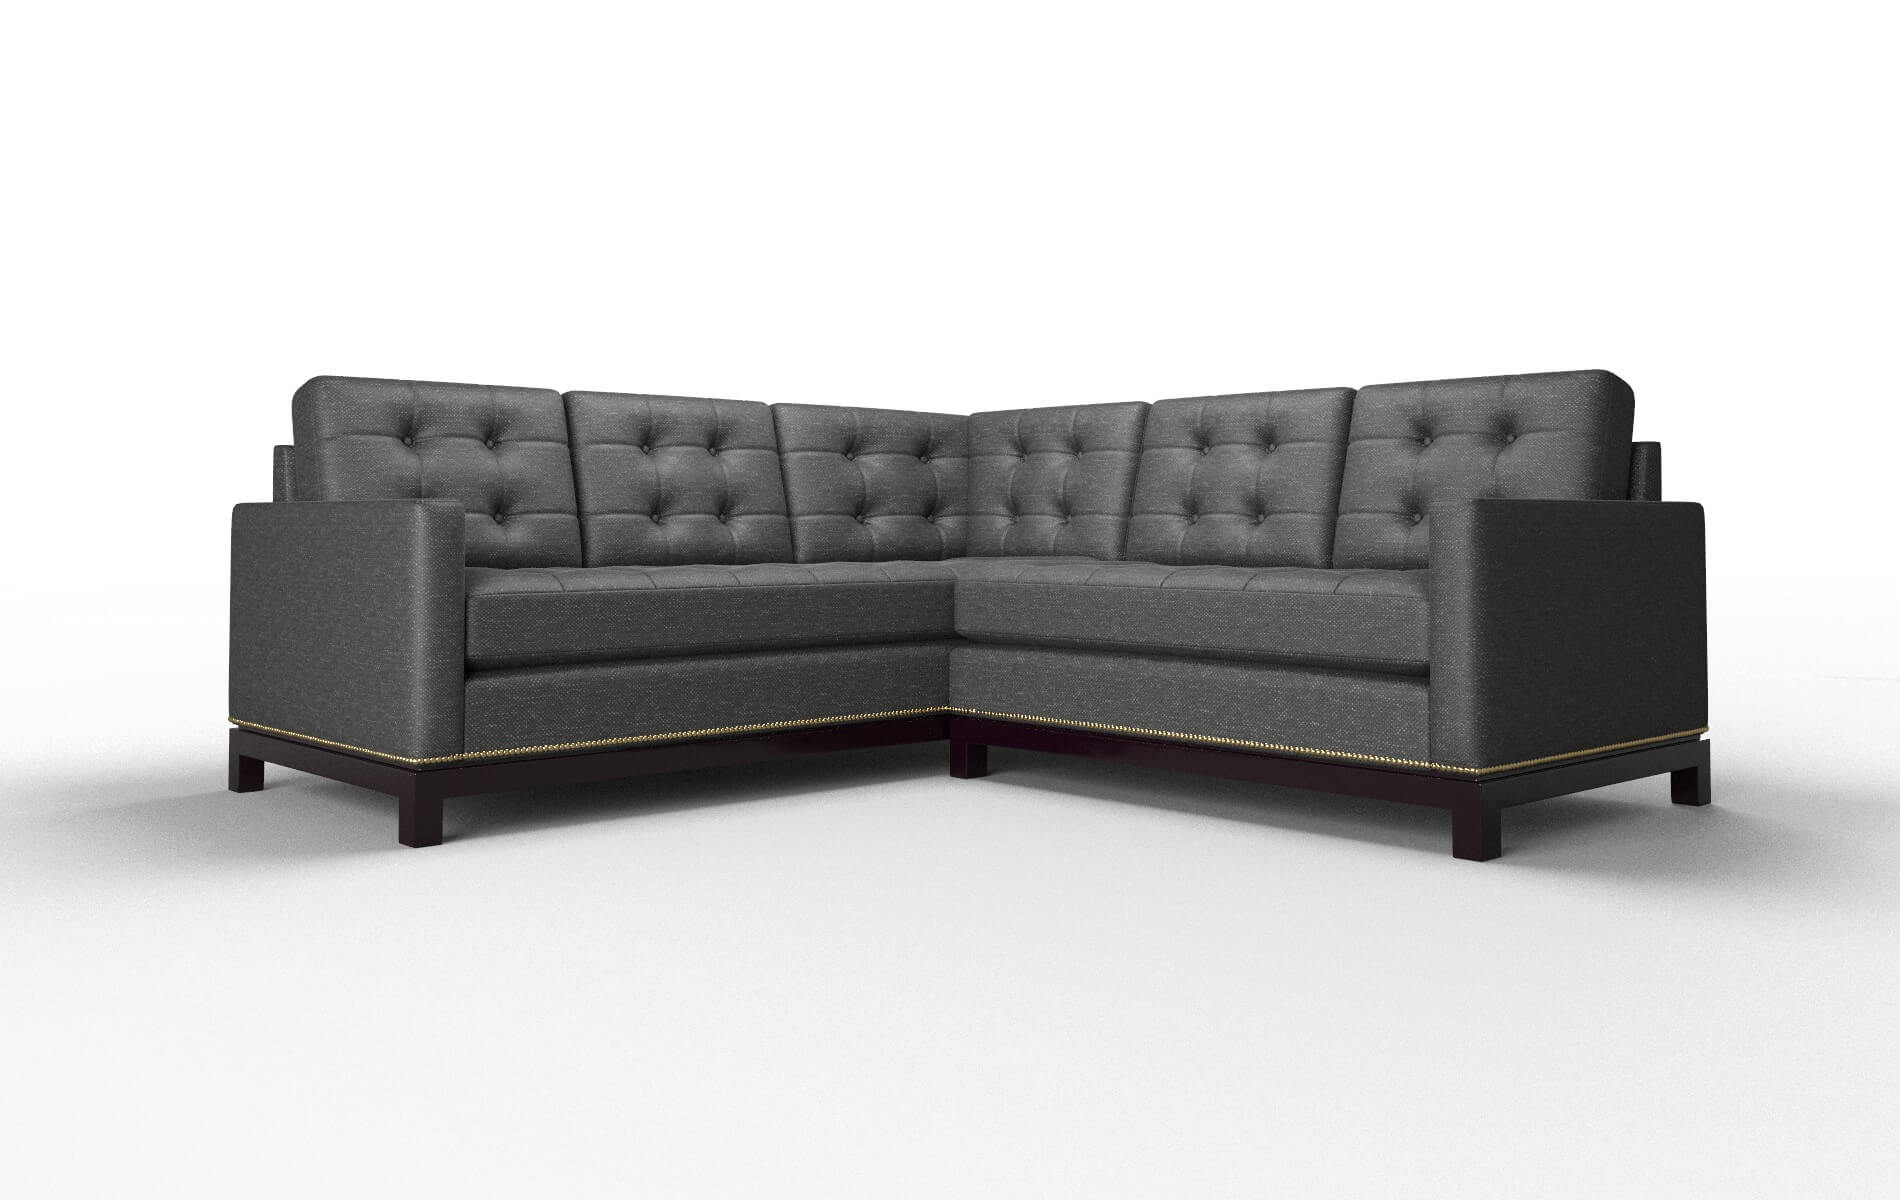 Davos Phoenix Charcoal Sectional - DreamSofa